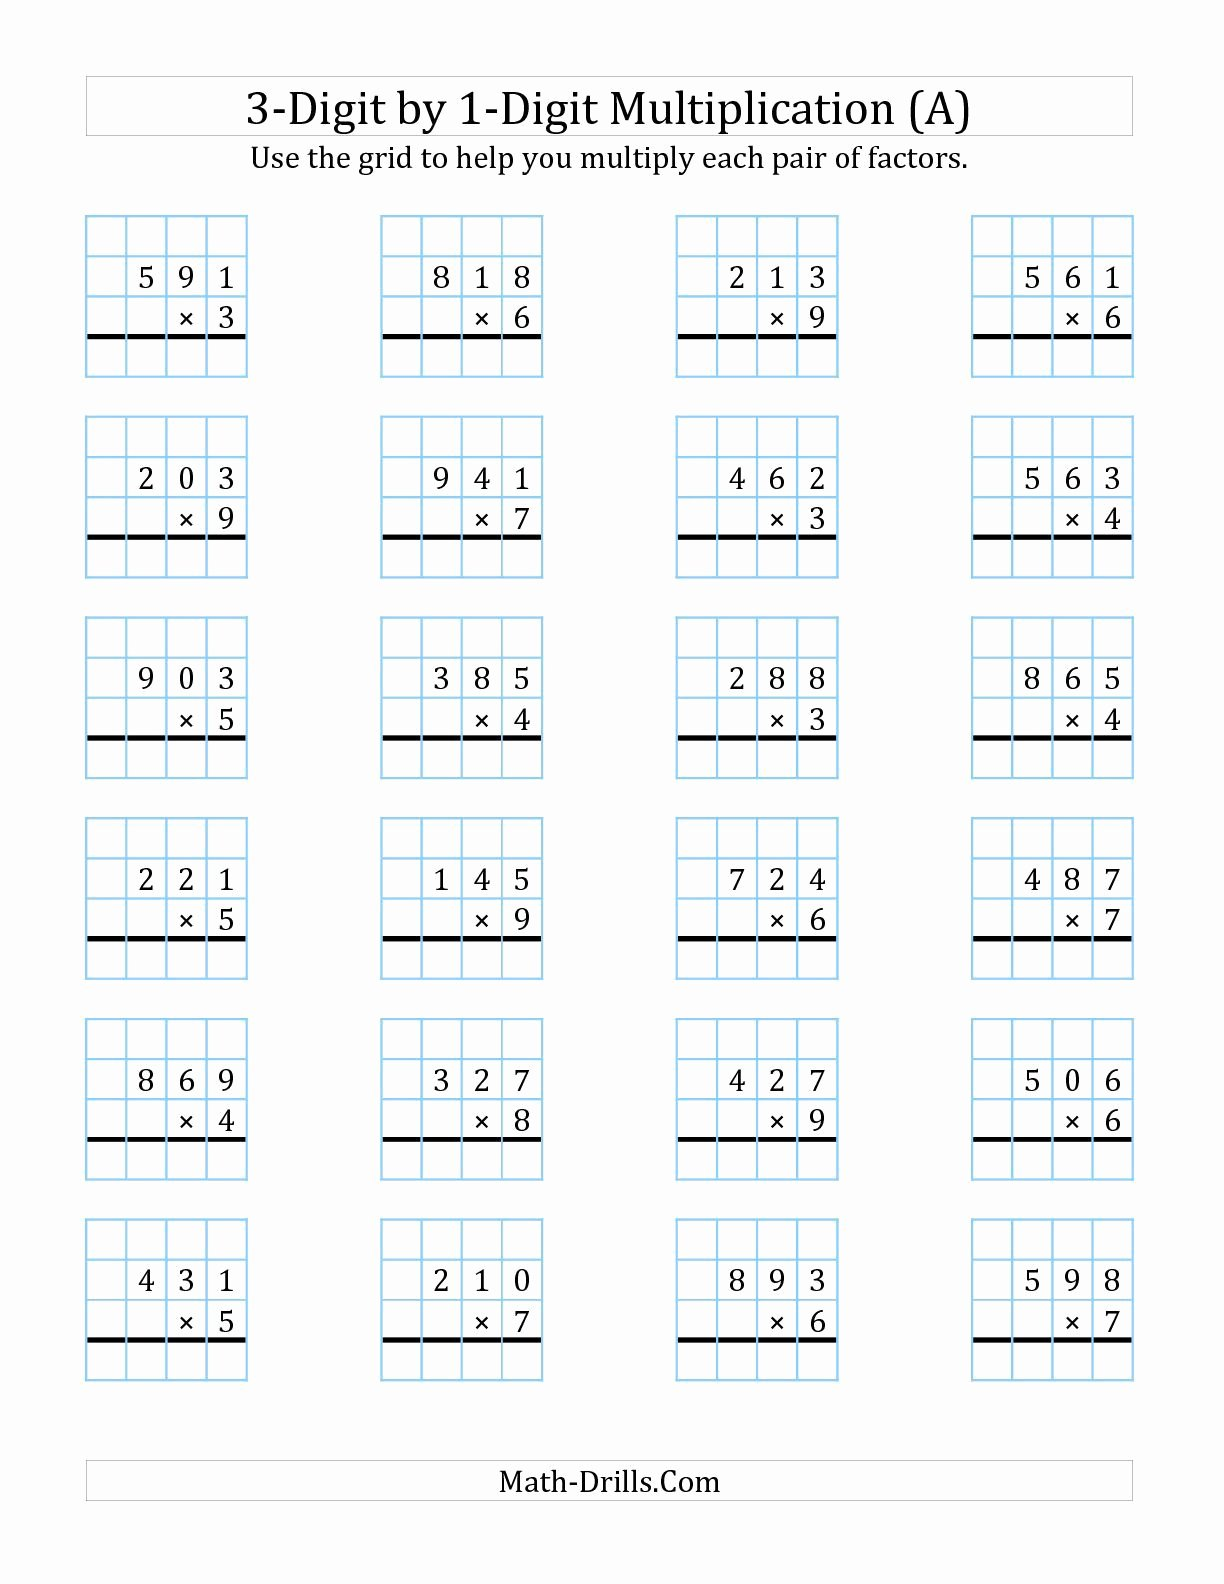 3 Digit by 2 Digit Multiplication Worksheets with Grids Inspirational the 3 Digit by 1 Digit Multiplication with Grid Support A